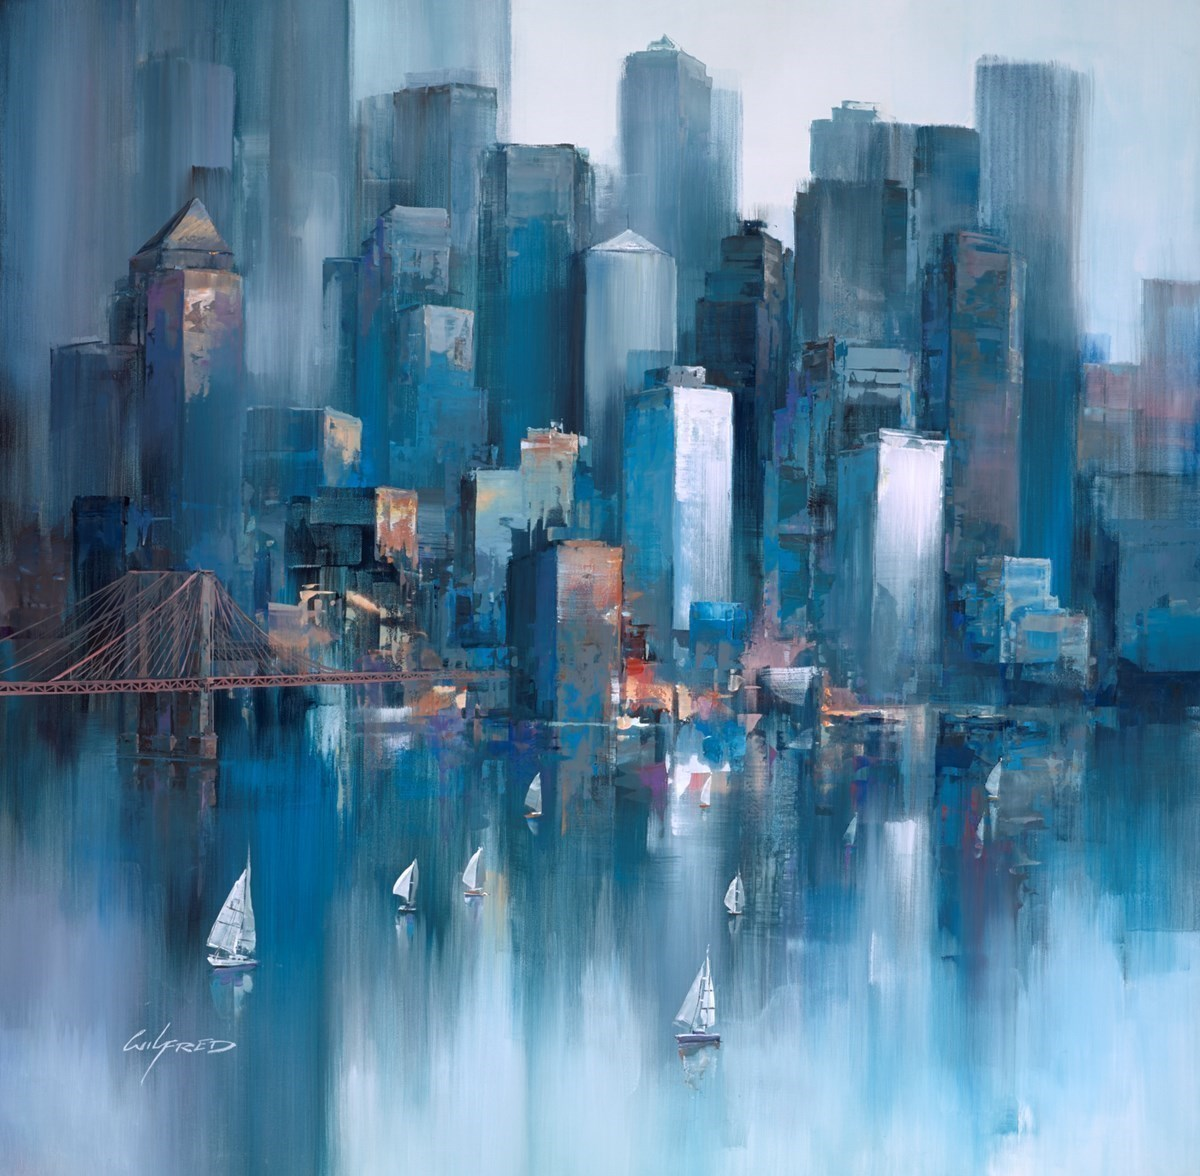 Into the City III by Wilfred -  sized 38x38 inches. Available from Whitewall Galleries